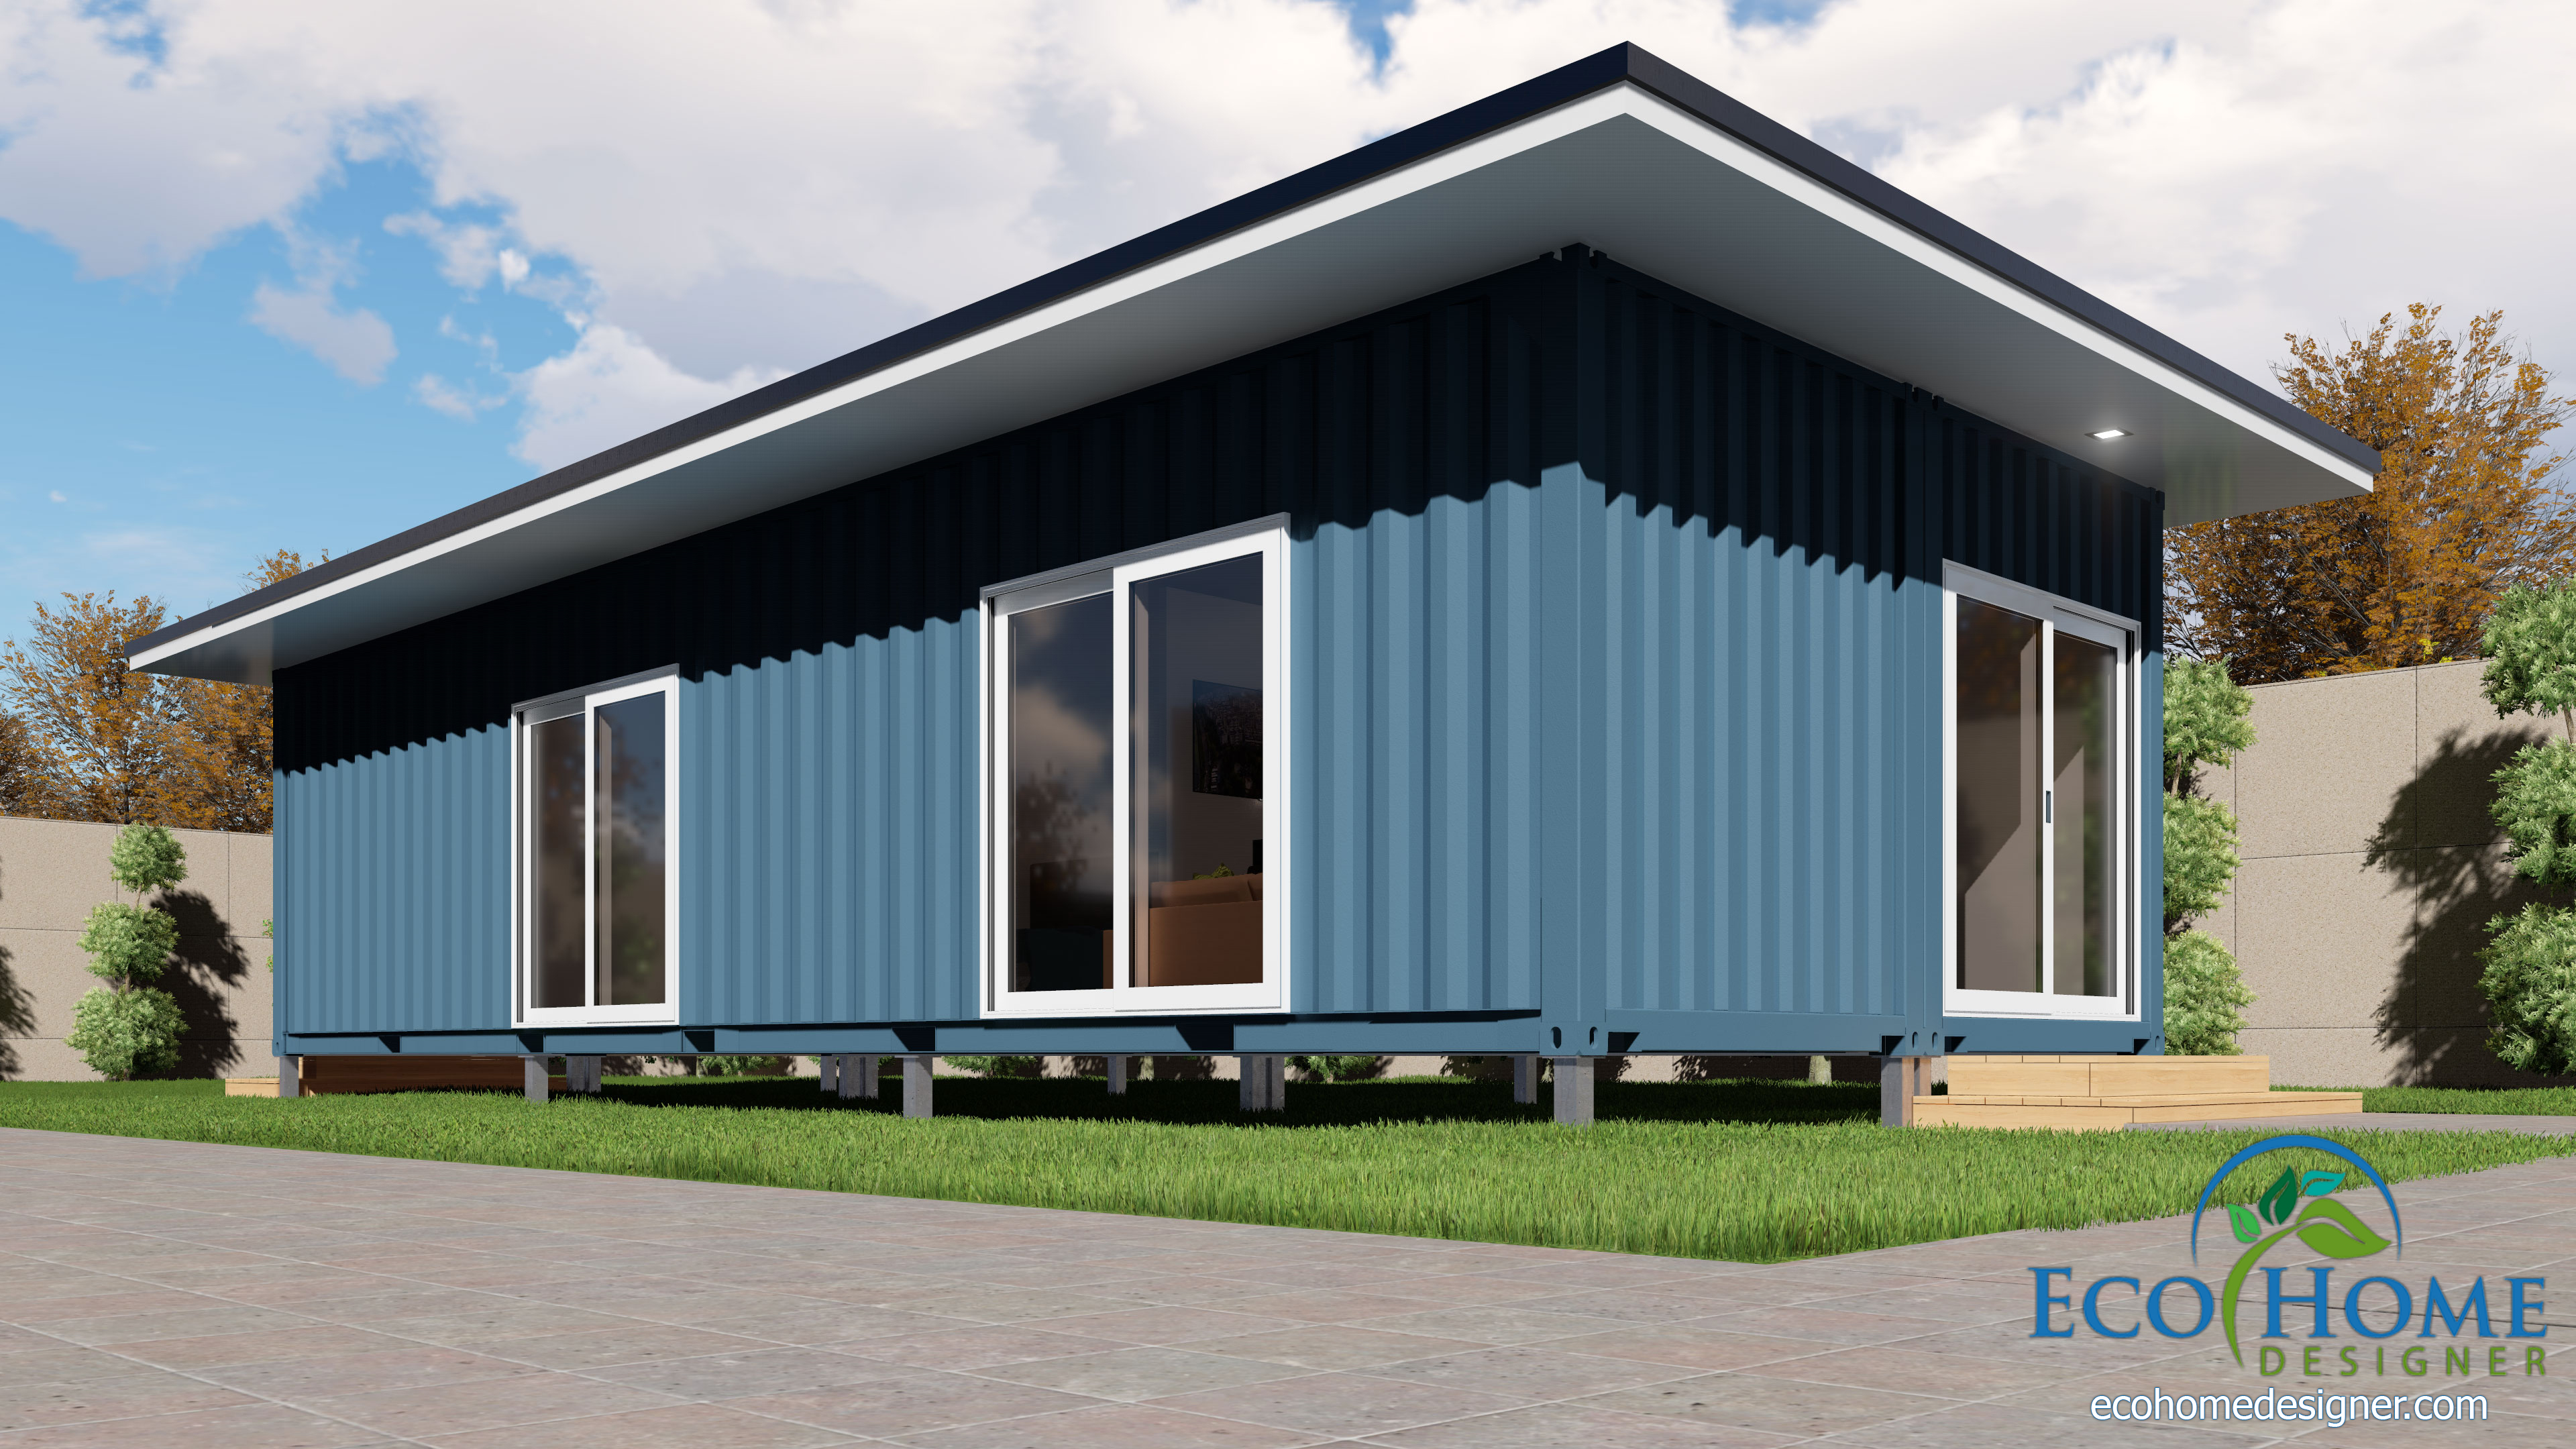 SCH2 2 x 40ft Single Bedroom Container Home | Eco Home Designer